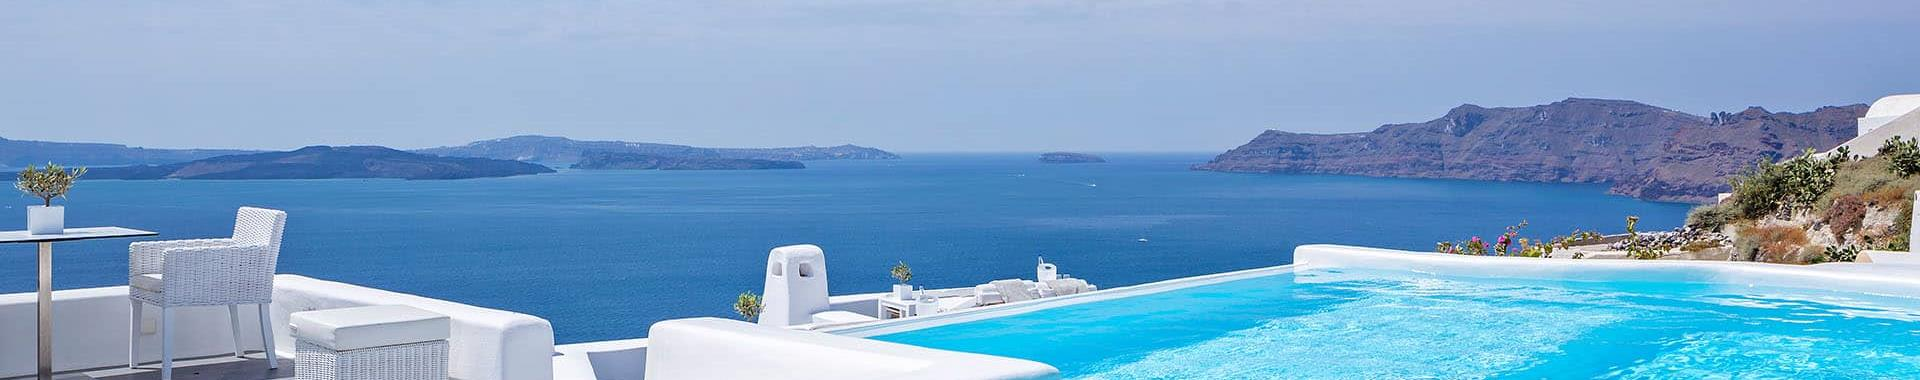 Akrotiri or Karterados Santorini Hotels with Infinity Pool